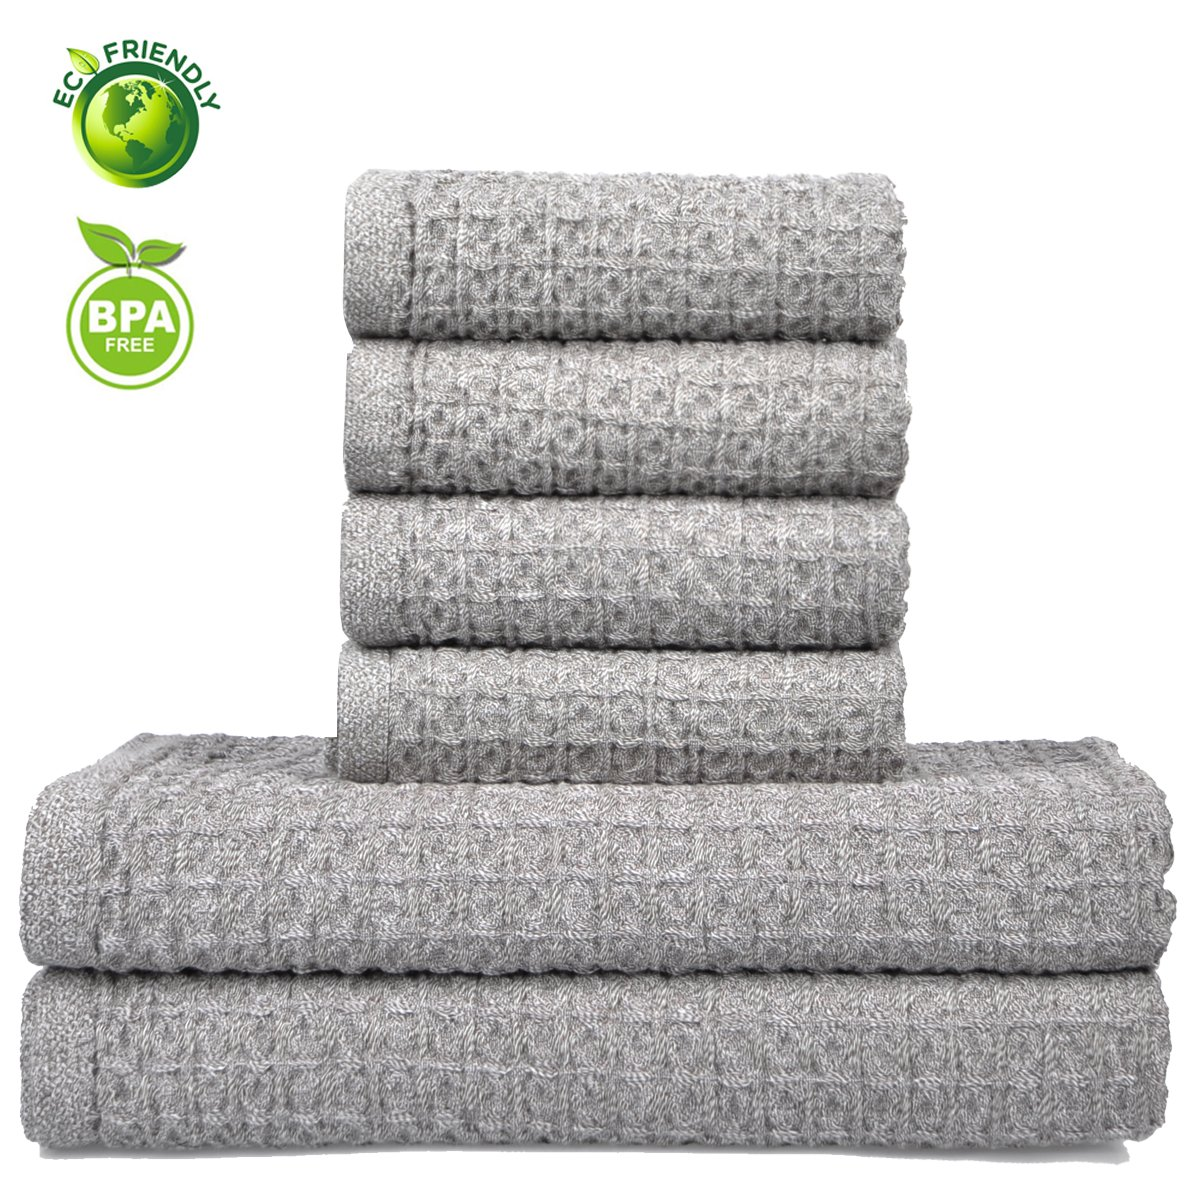 Vanca Bath Towels Sets Cotton Soft Durable Hand Large Shower Beach Absorbent Terry Gym Hotel Luxury Waffle Kids Towel (Grey)